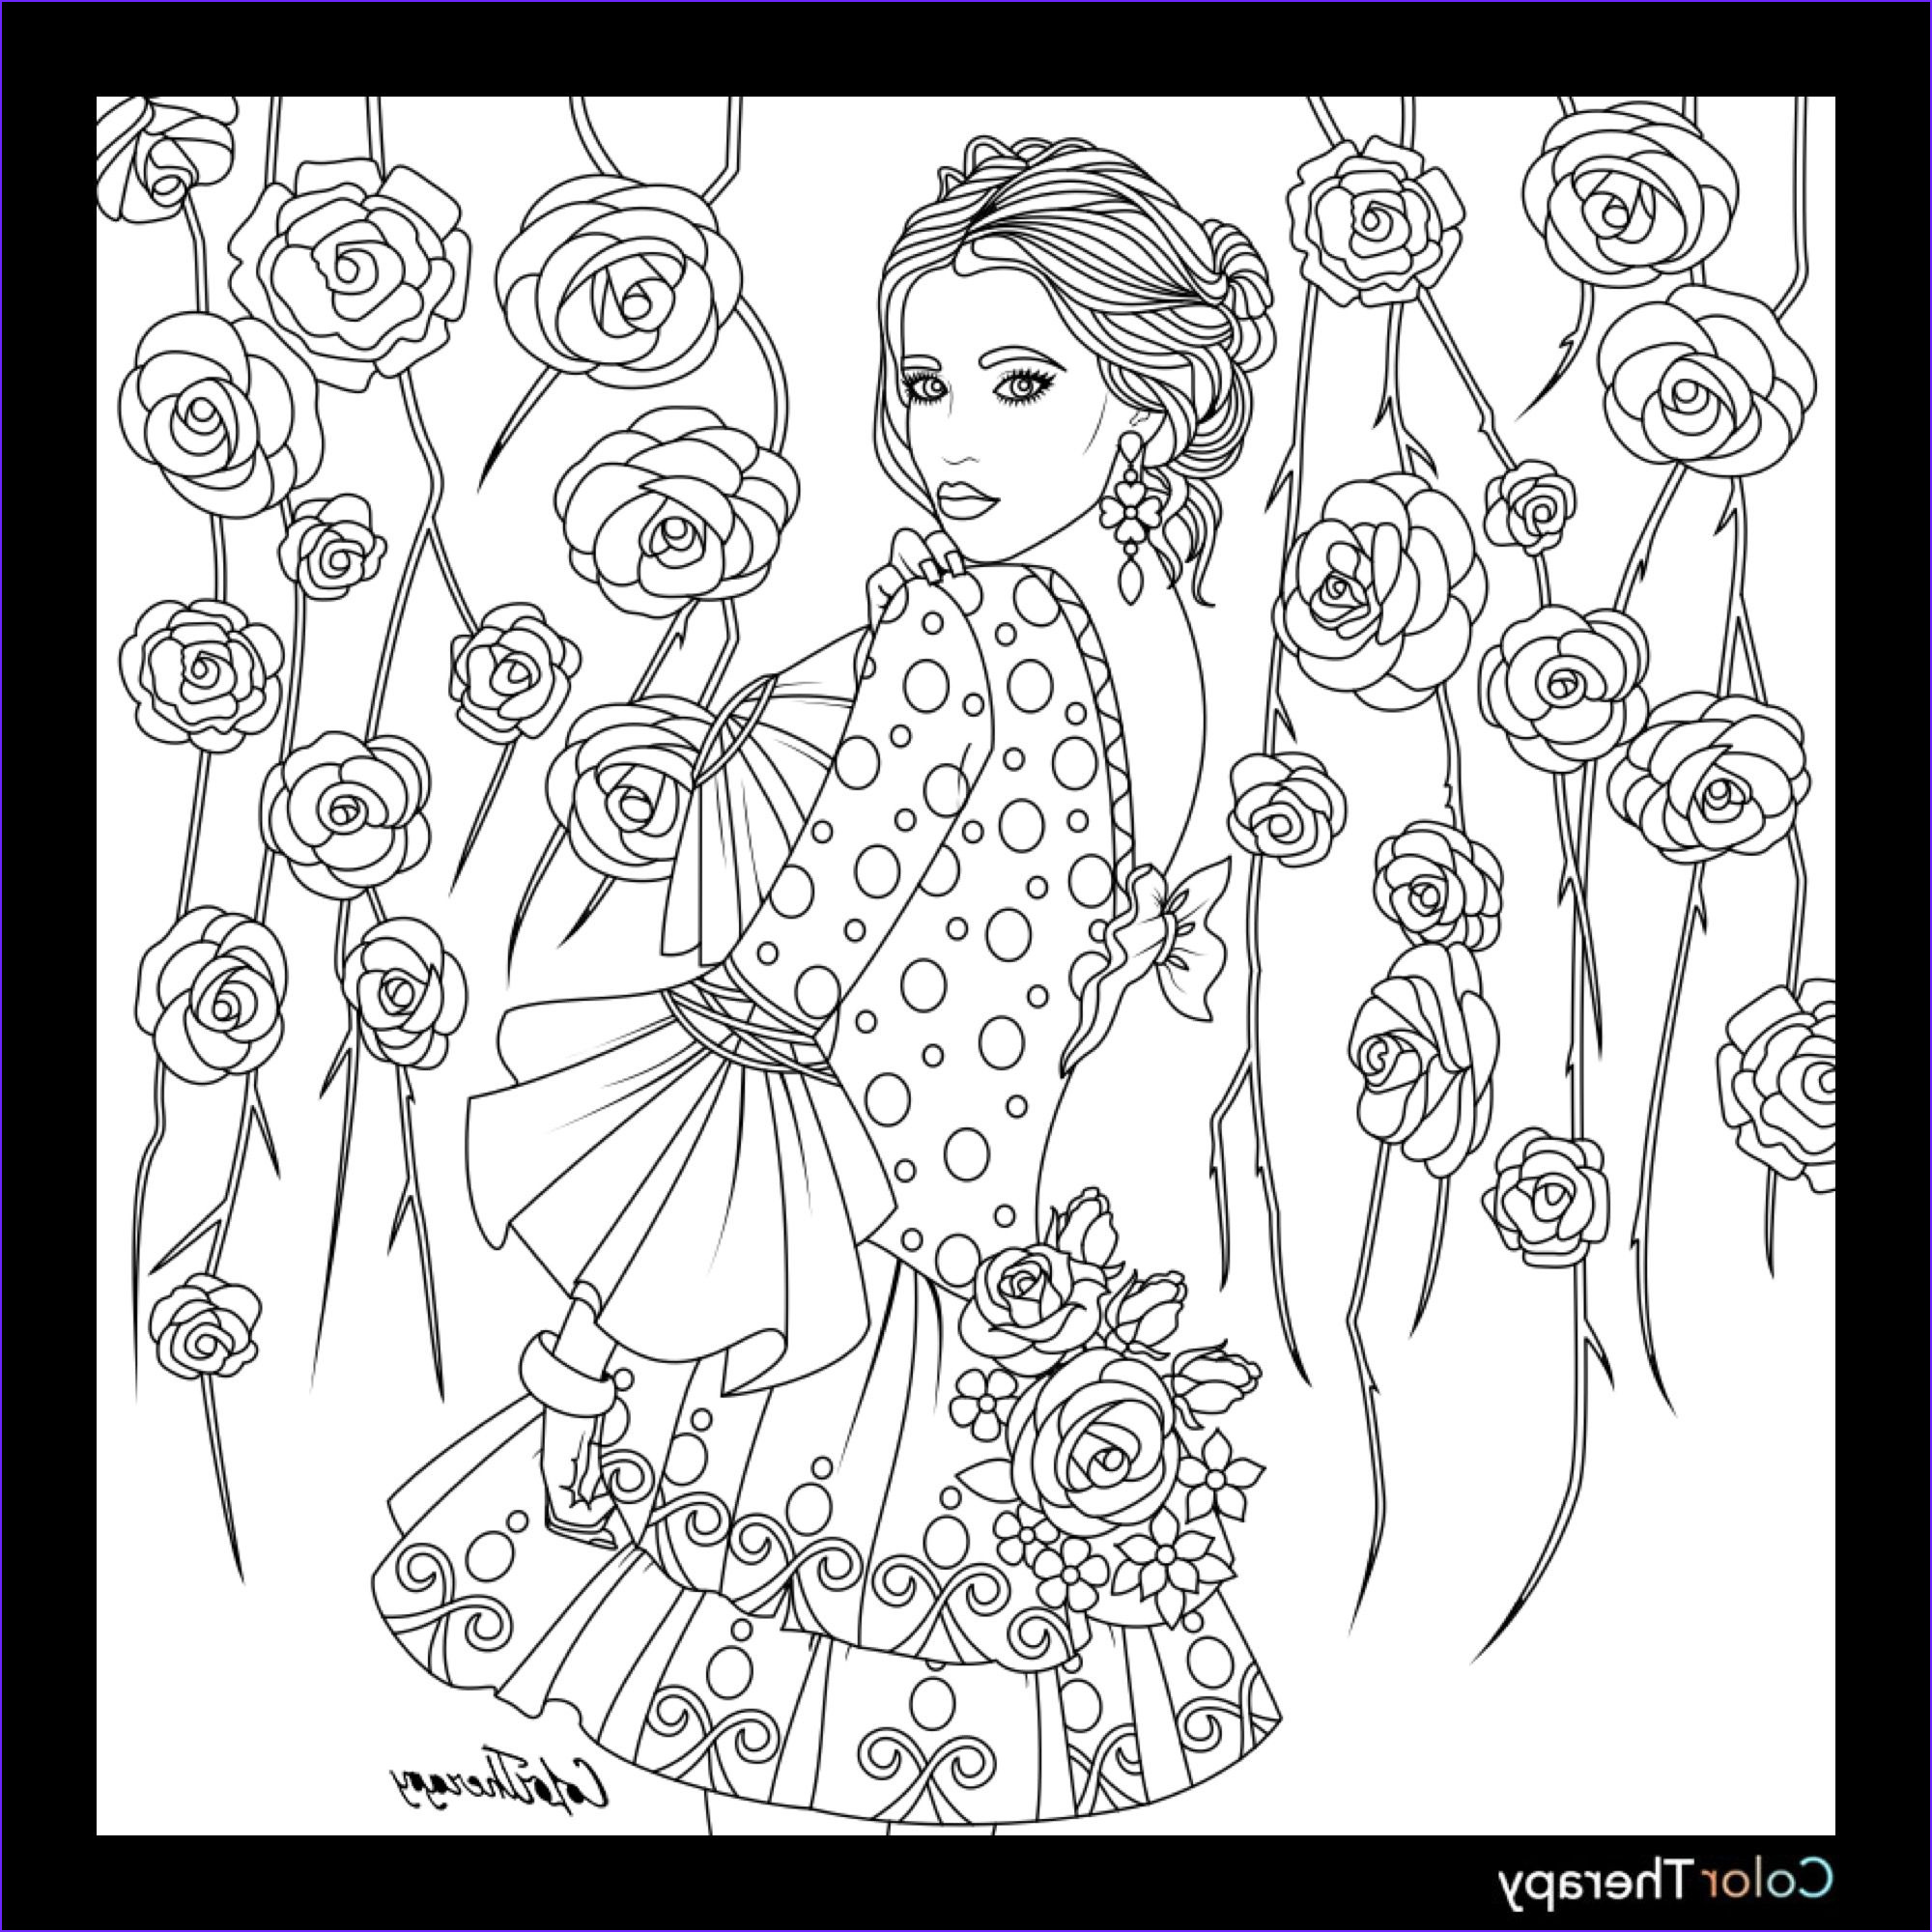 Therapeutic Coloring Pages Cool Collection Pin by Coloring Pages for Adults On Coloring Pages for